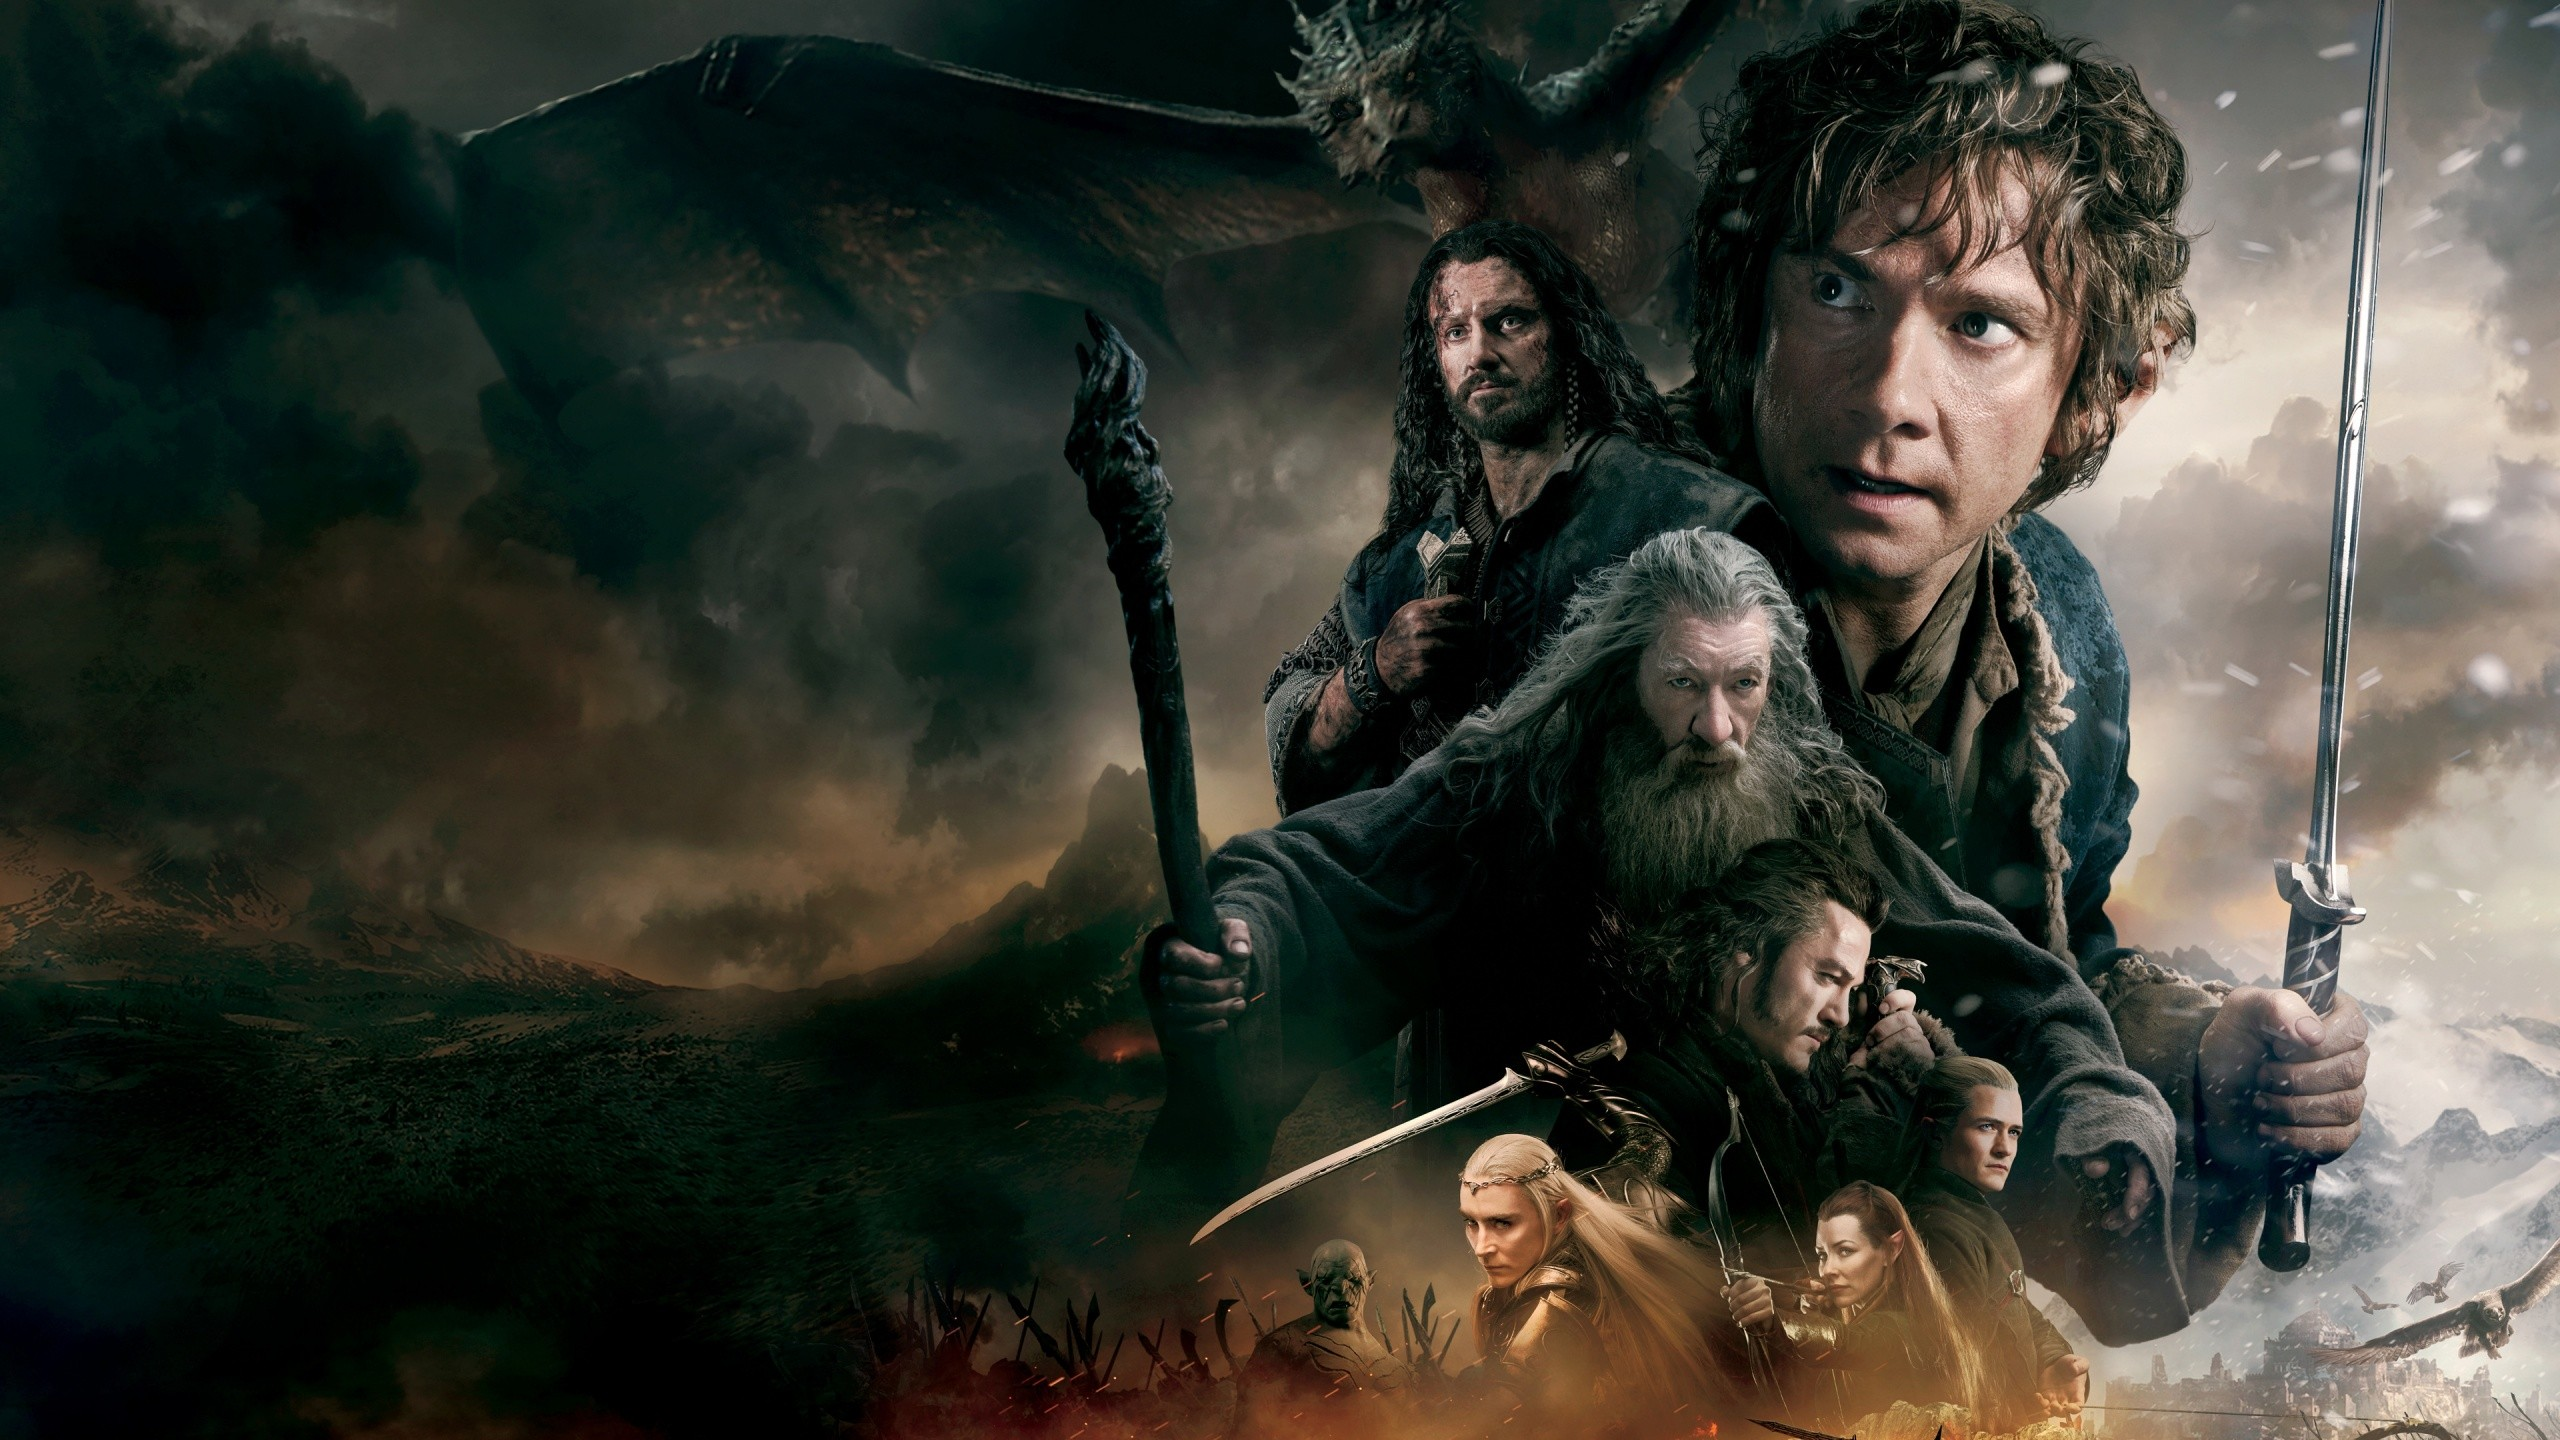 The Hobbit Battle Of Download Wallpaper